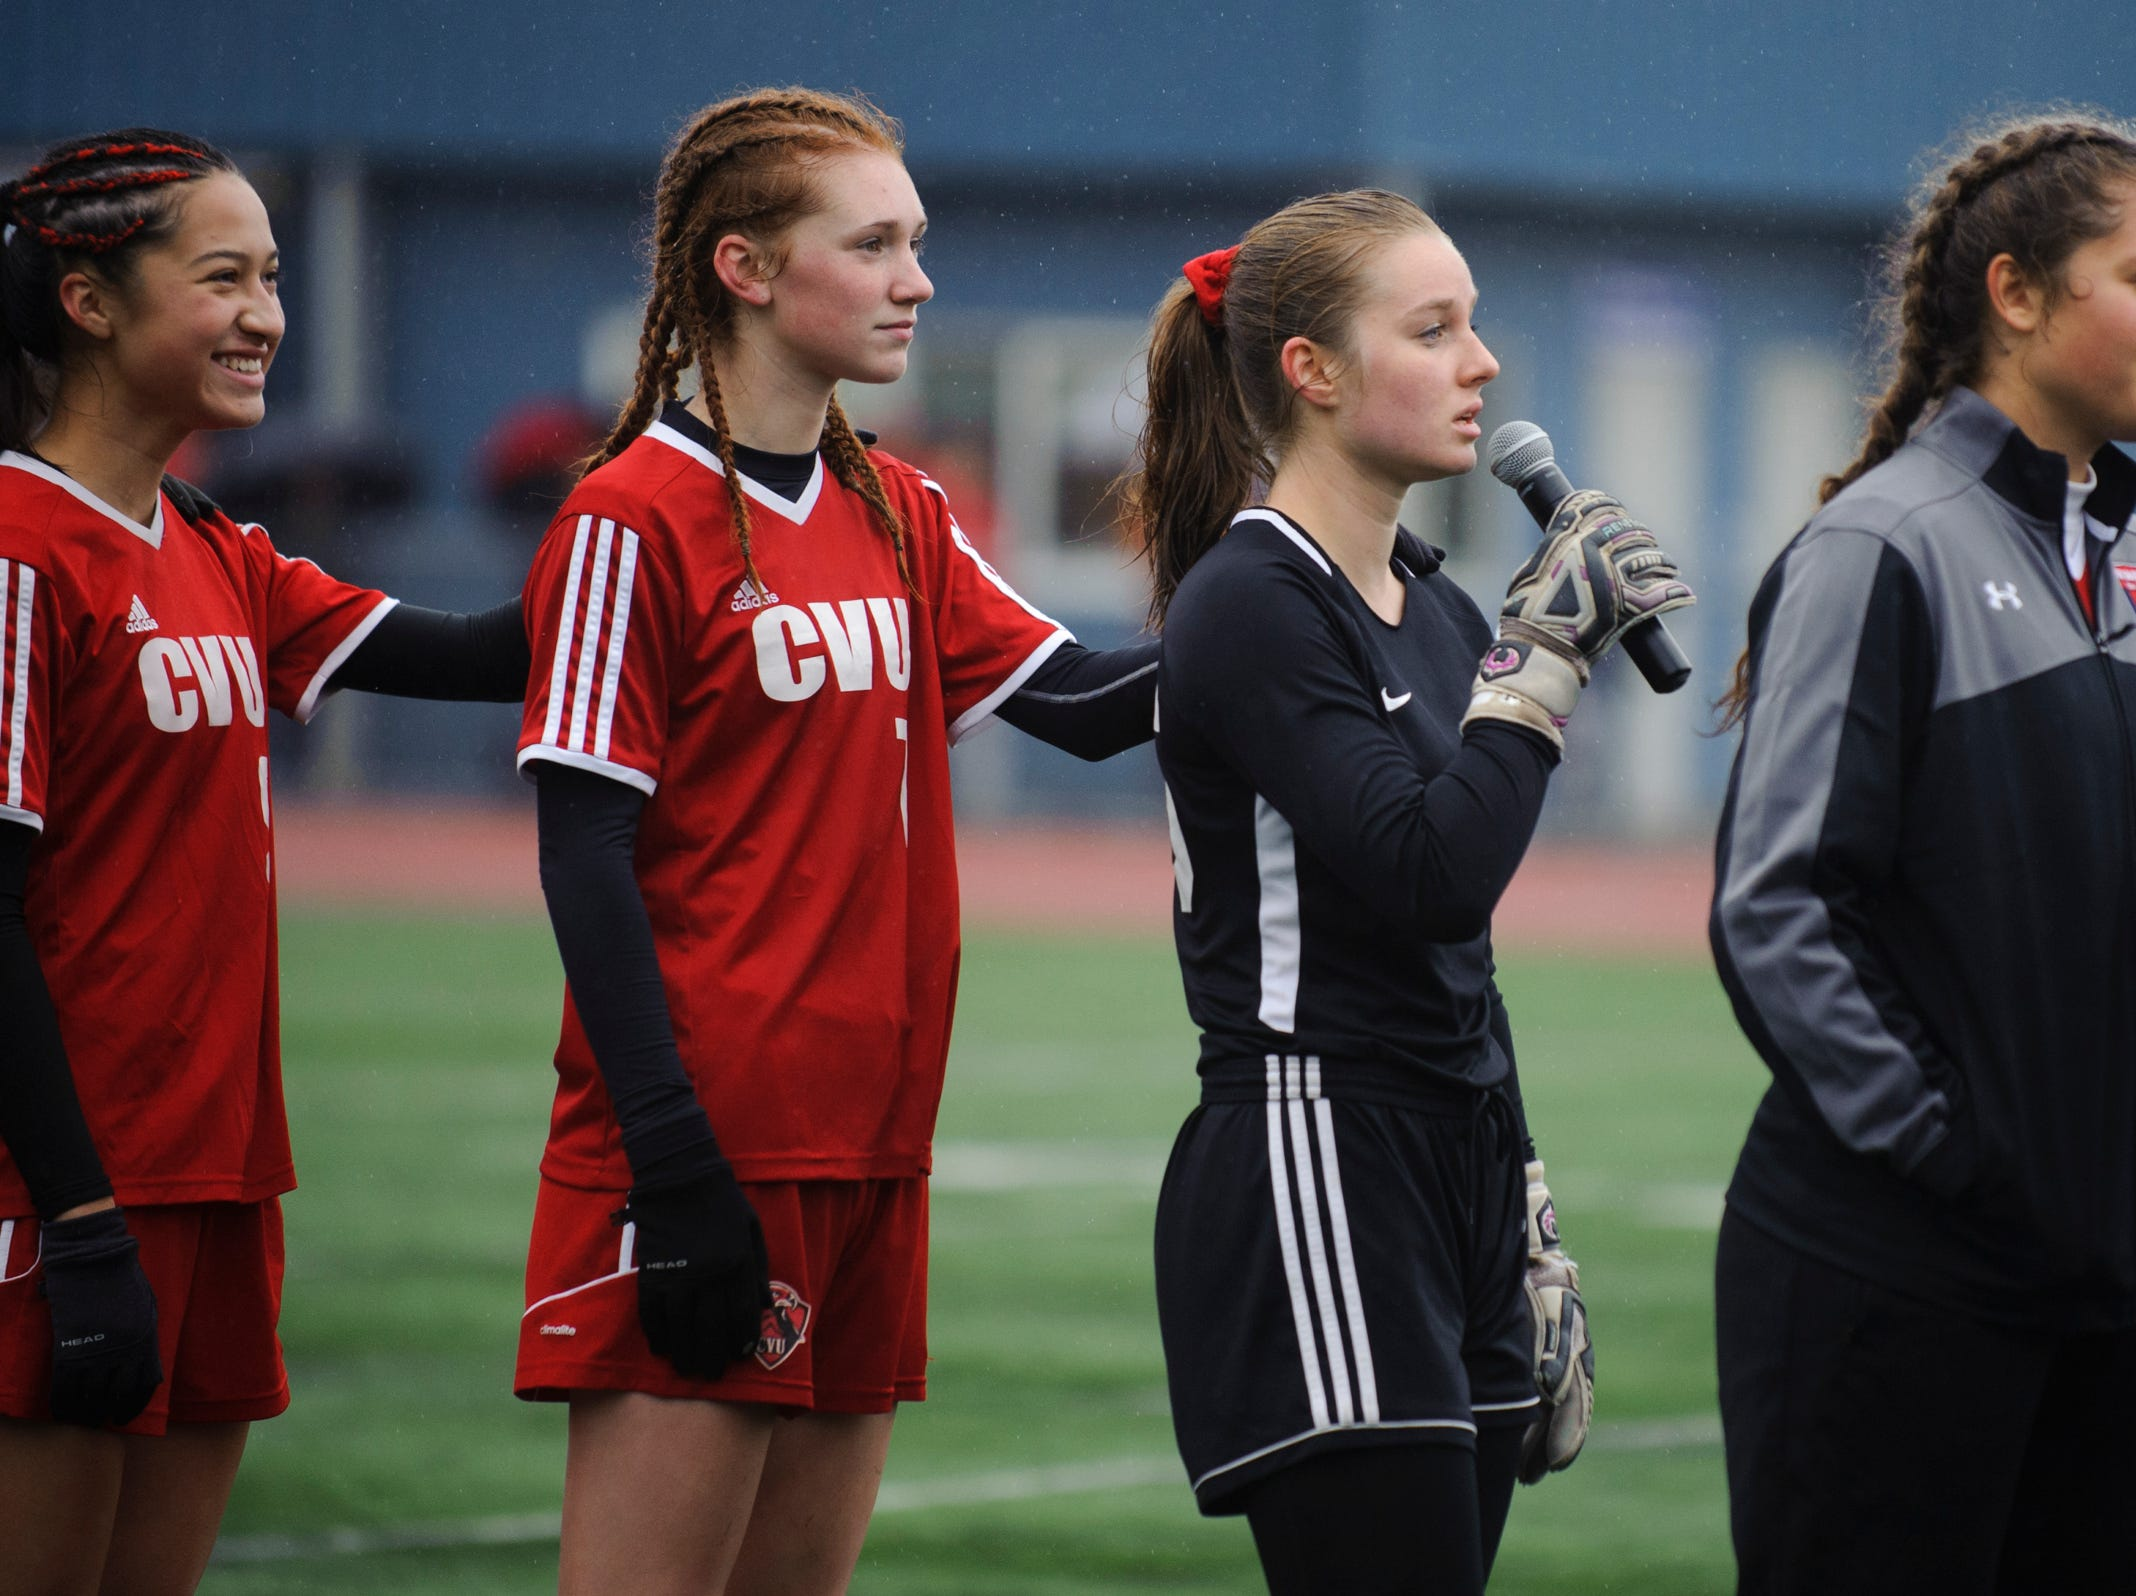 CVU goalie Maryn Askew sings the National Anthem during the division I girls soccer championship game between the Colchester Lakers and the Champlain Valley Union Redhawks at Buck Hard Field on Saturday morning November 3, 2018 in Burlington.